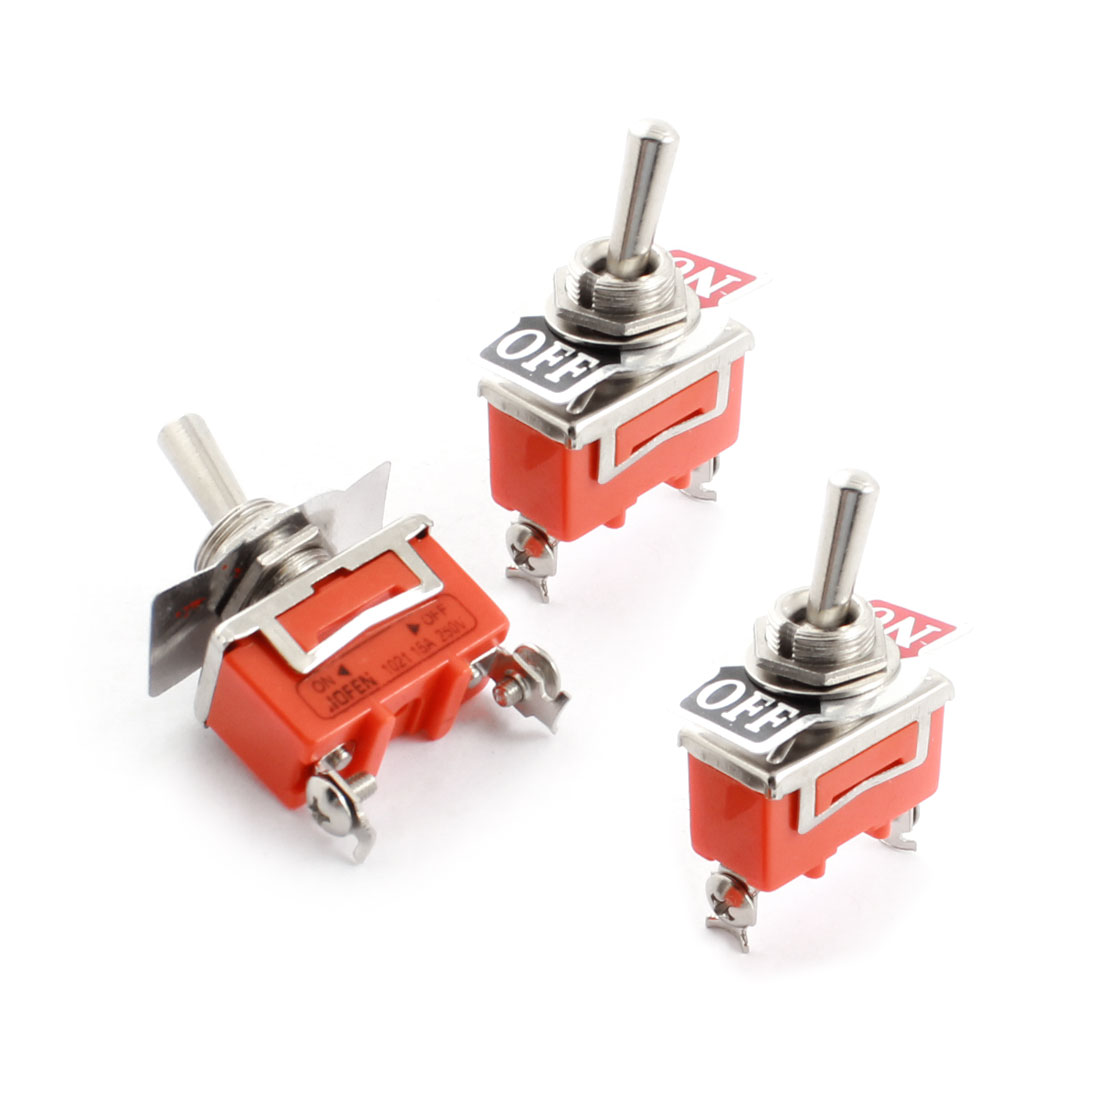 3Pcs AC250V 15A 12mm Thread Panel Mount SPST 4 Screw Terminals 2 Positions ON/OFF Orange Toggle Switch